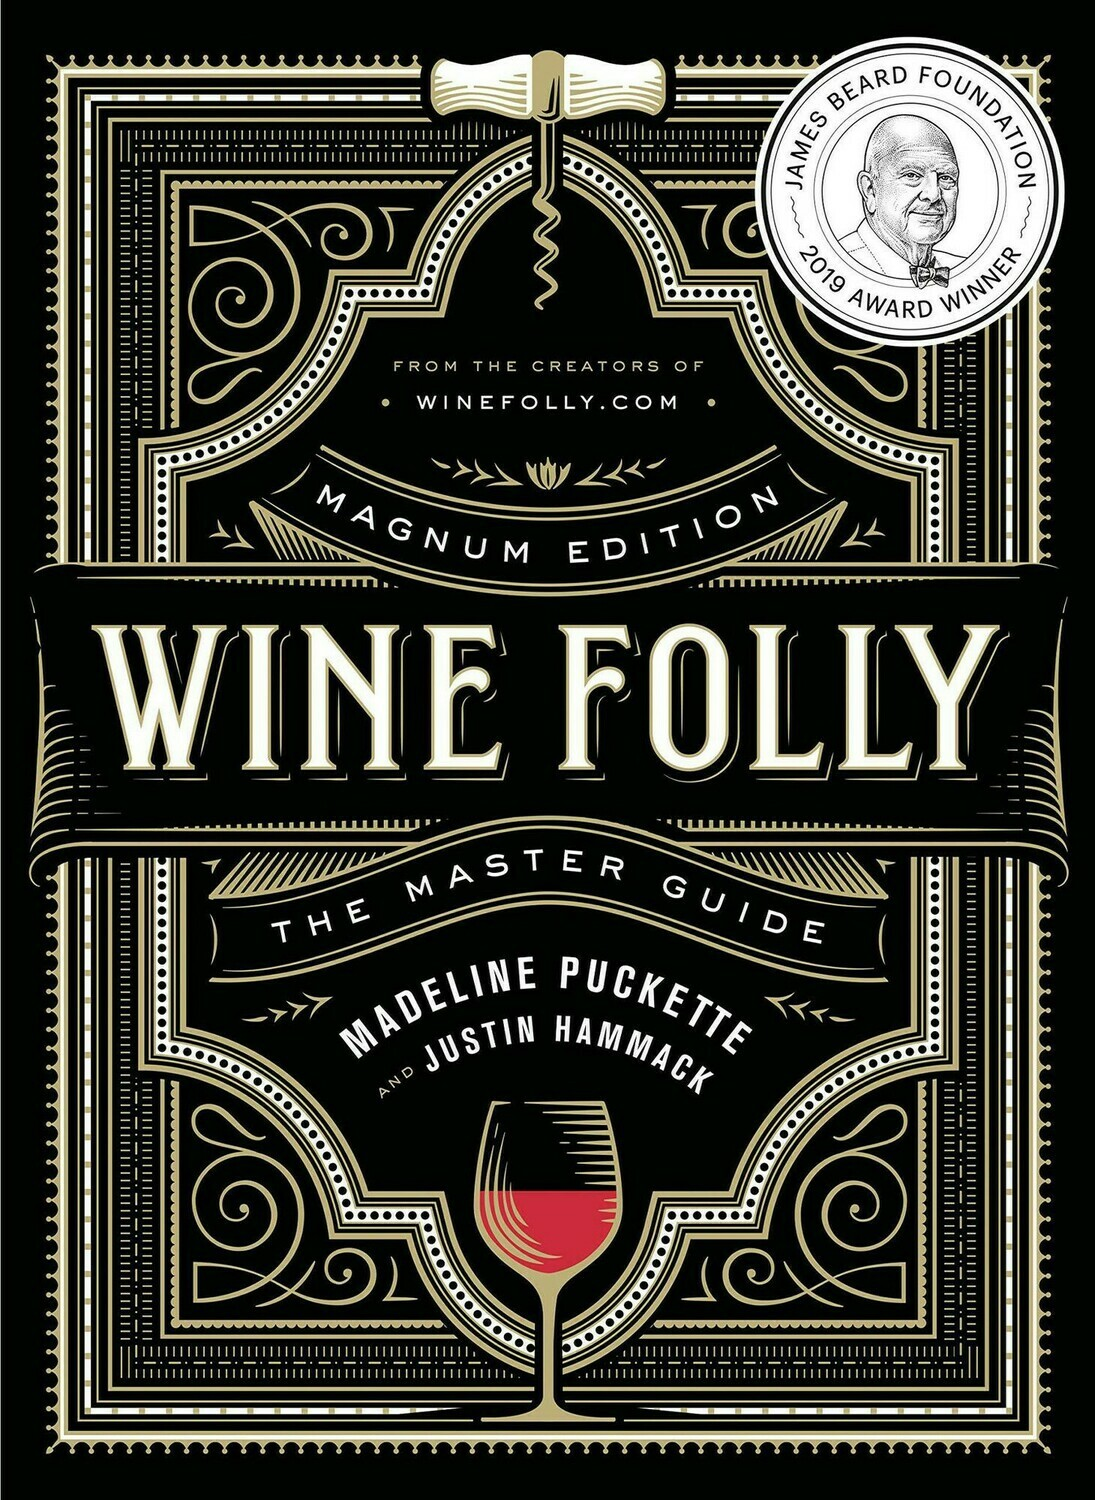 Wine Folly: Magnum Edition: The Master Guide Hardcover